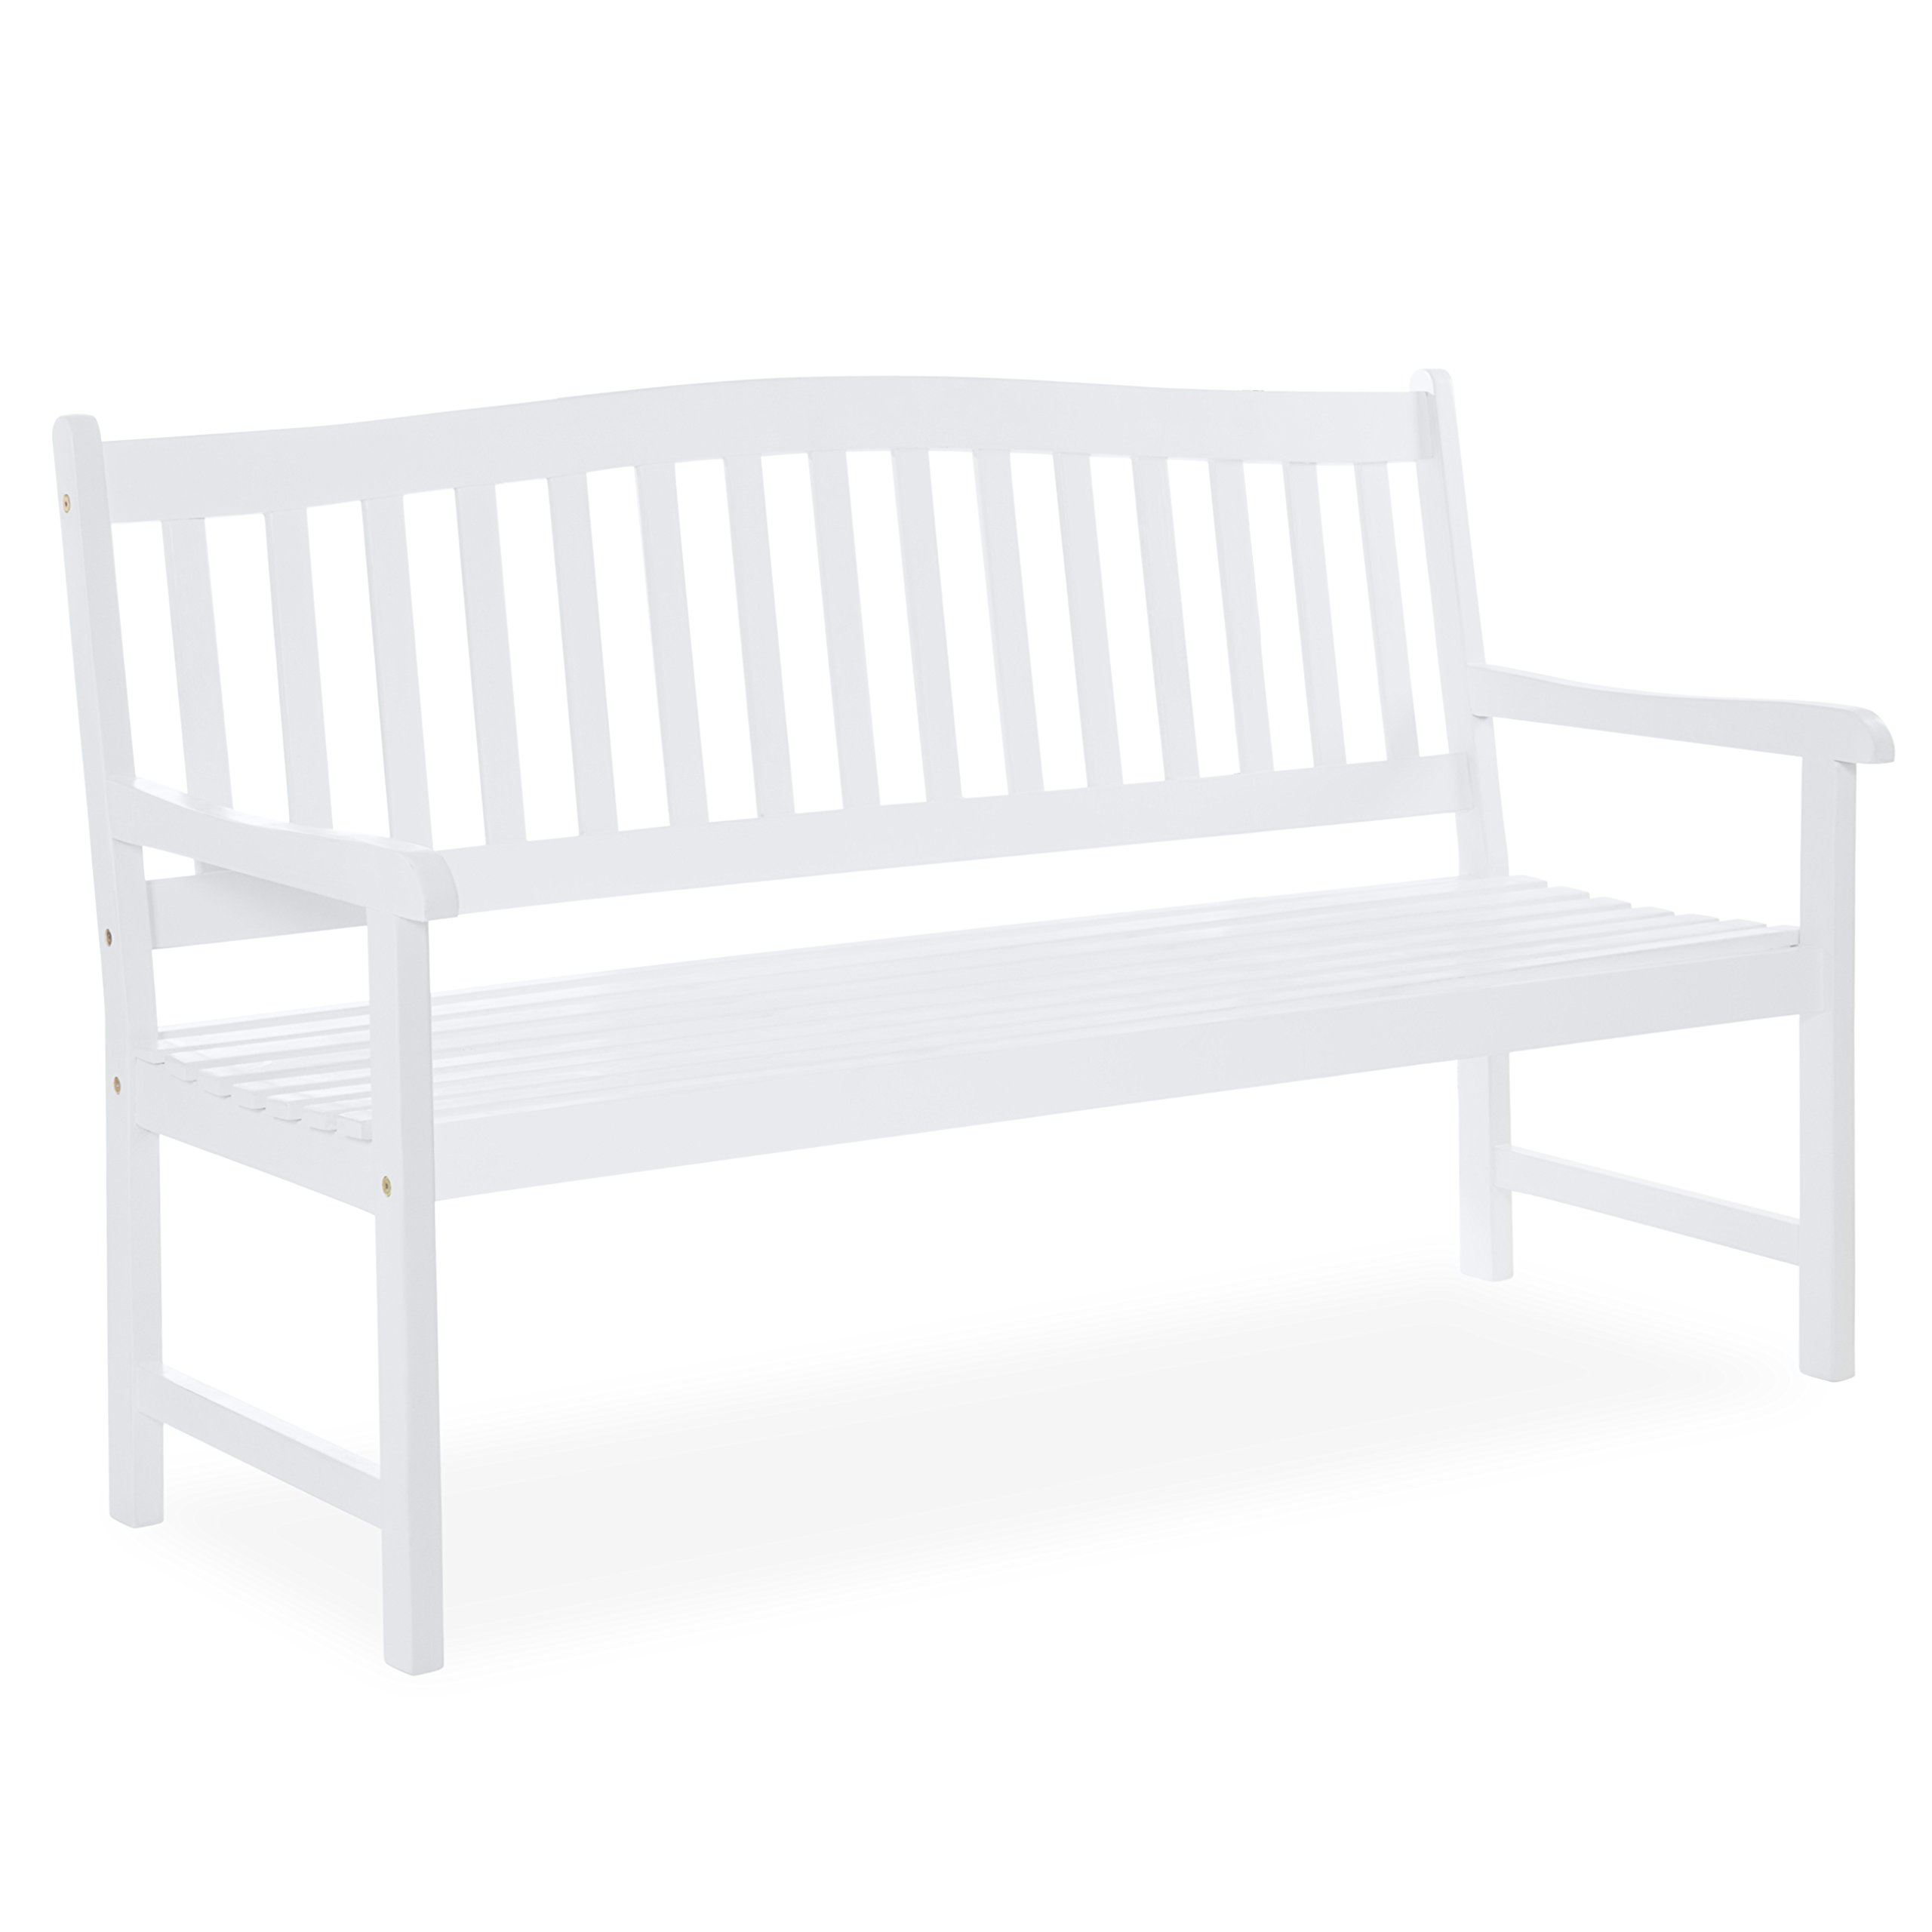 Best Choice Products 60 inches Classic Acacia Wood Outdoor Bench for Patio, Garden, Backyard, Porch - White by Best Choice Products